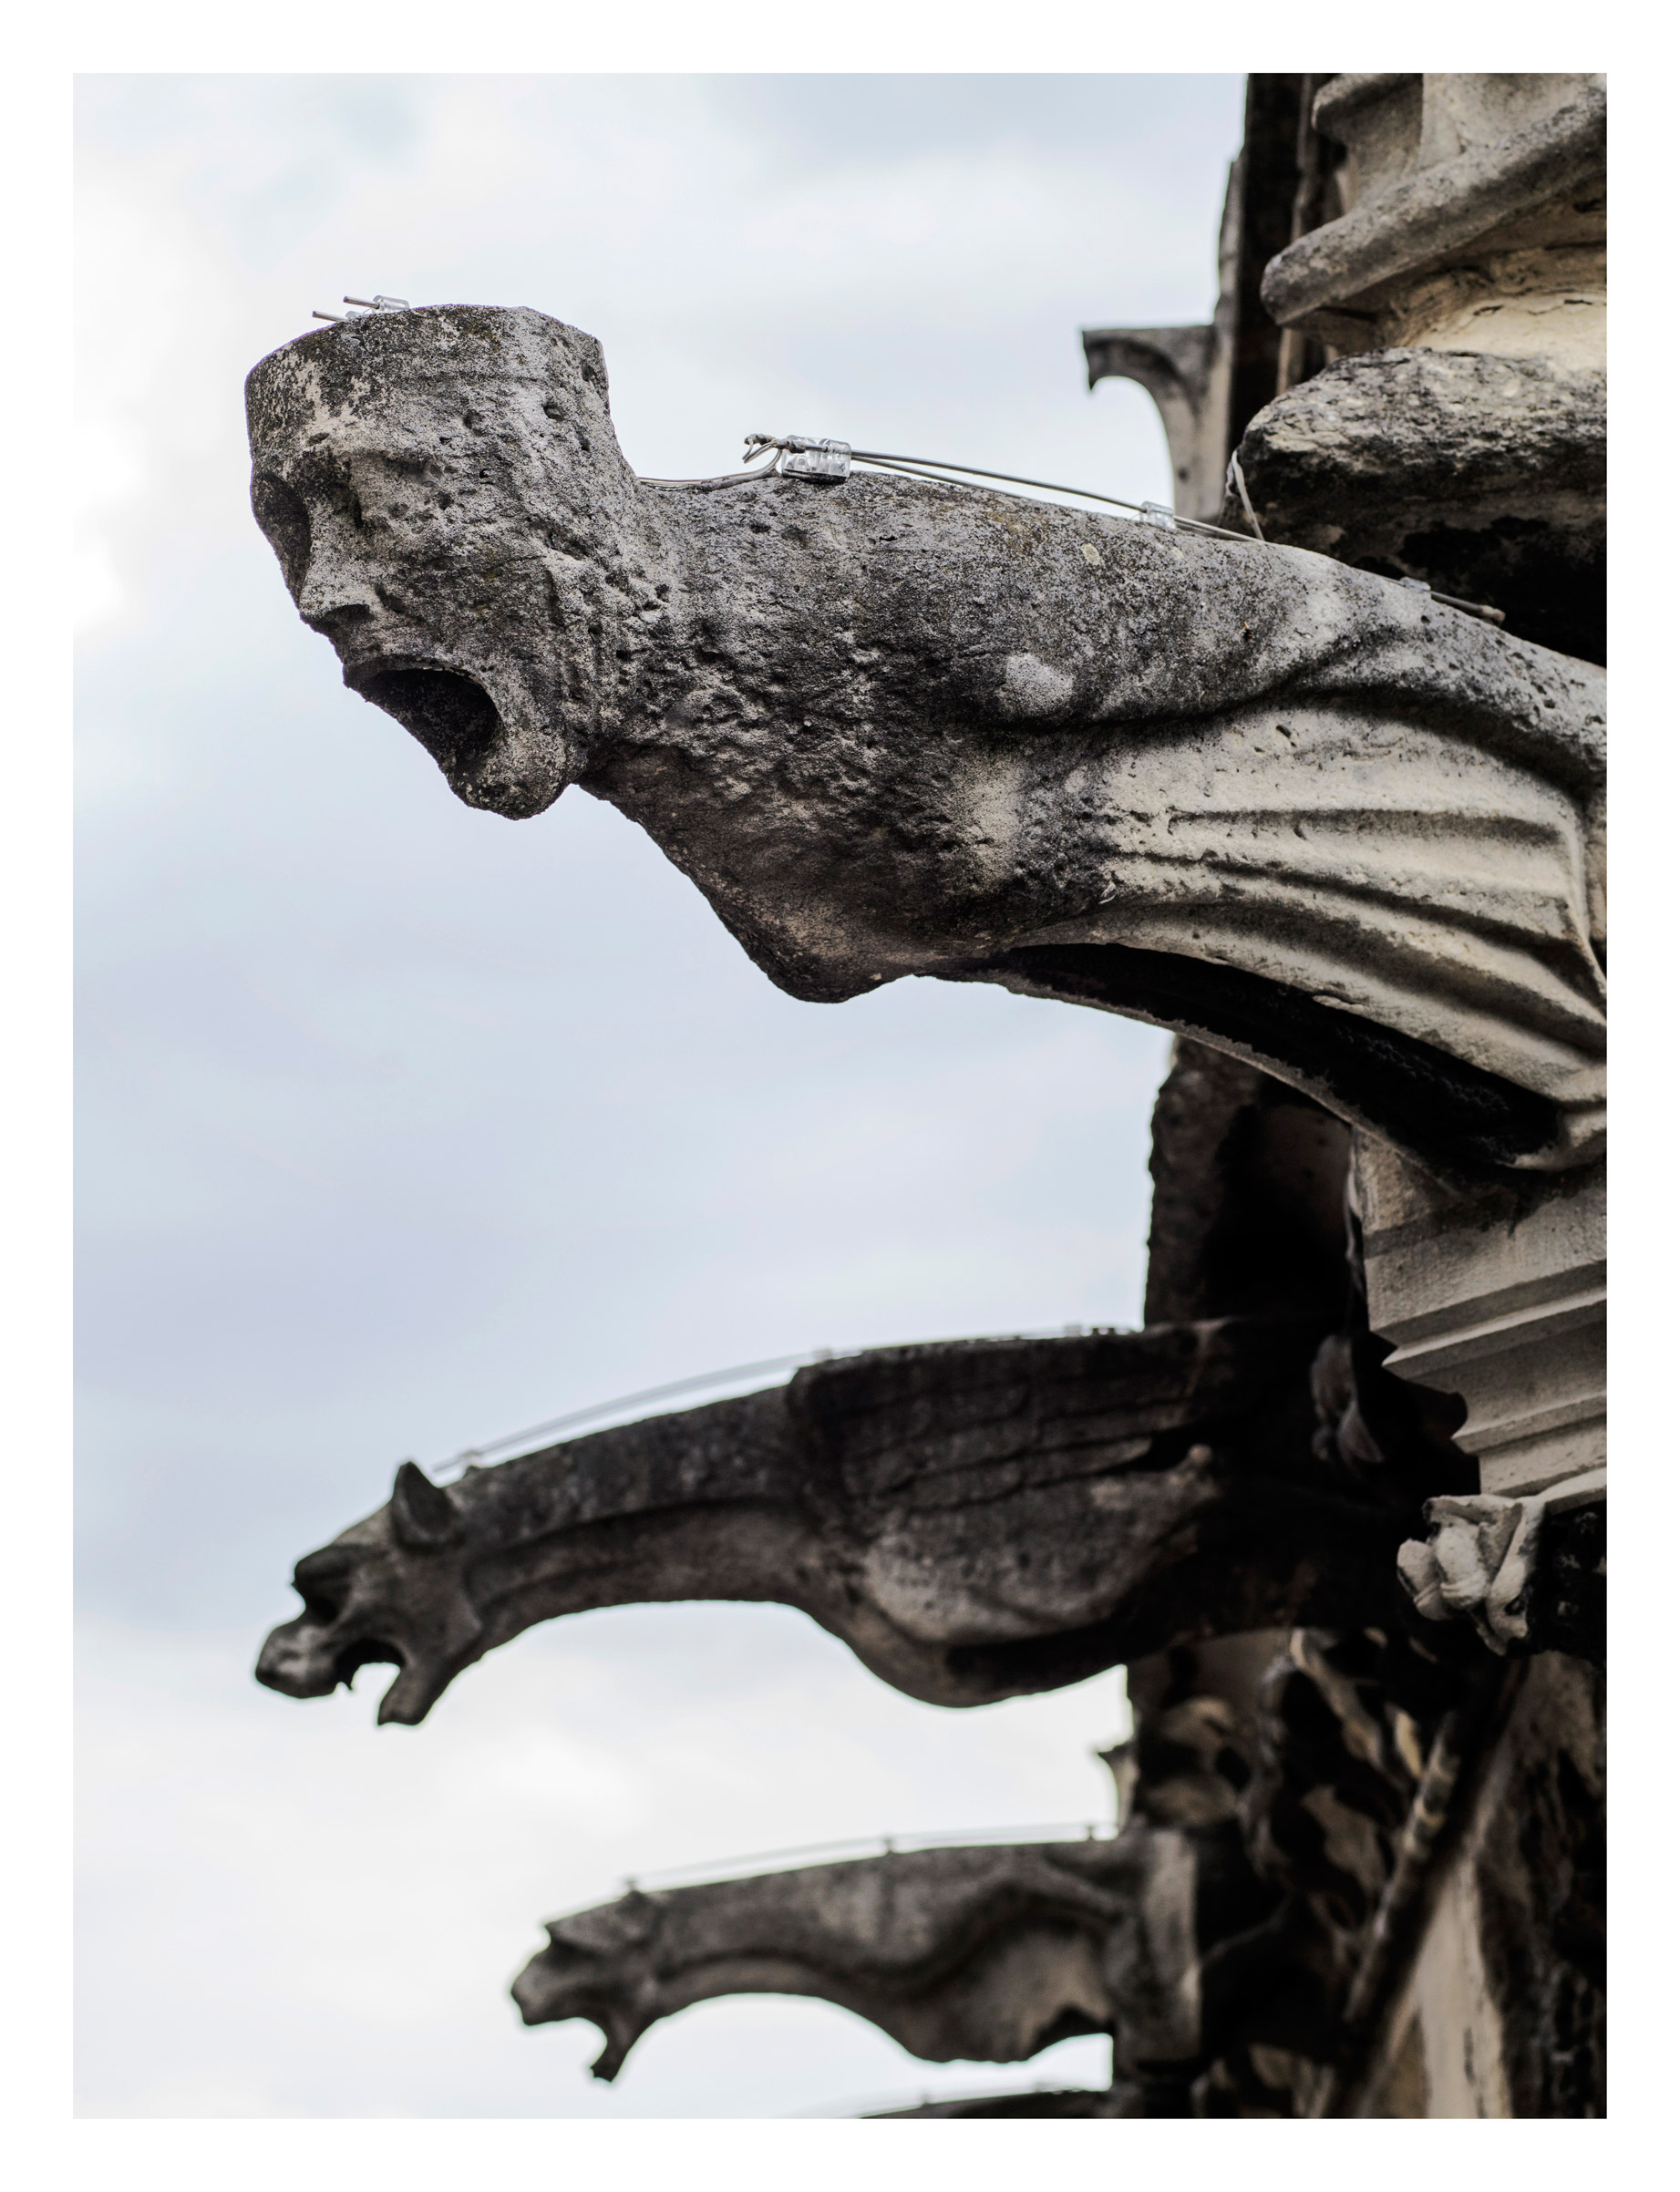 Many of Notre Dame's gargoyles, which act as rain spouts, have corroded and been replaced with PVC tubes, July 2017.